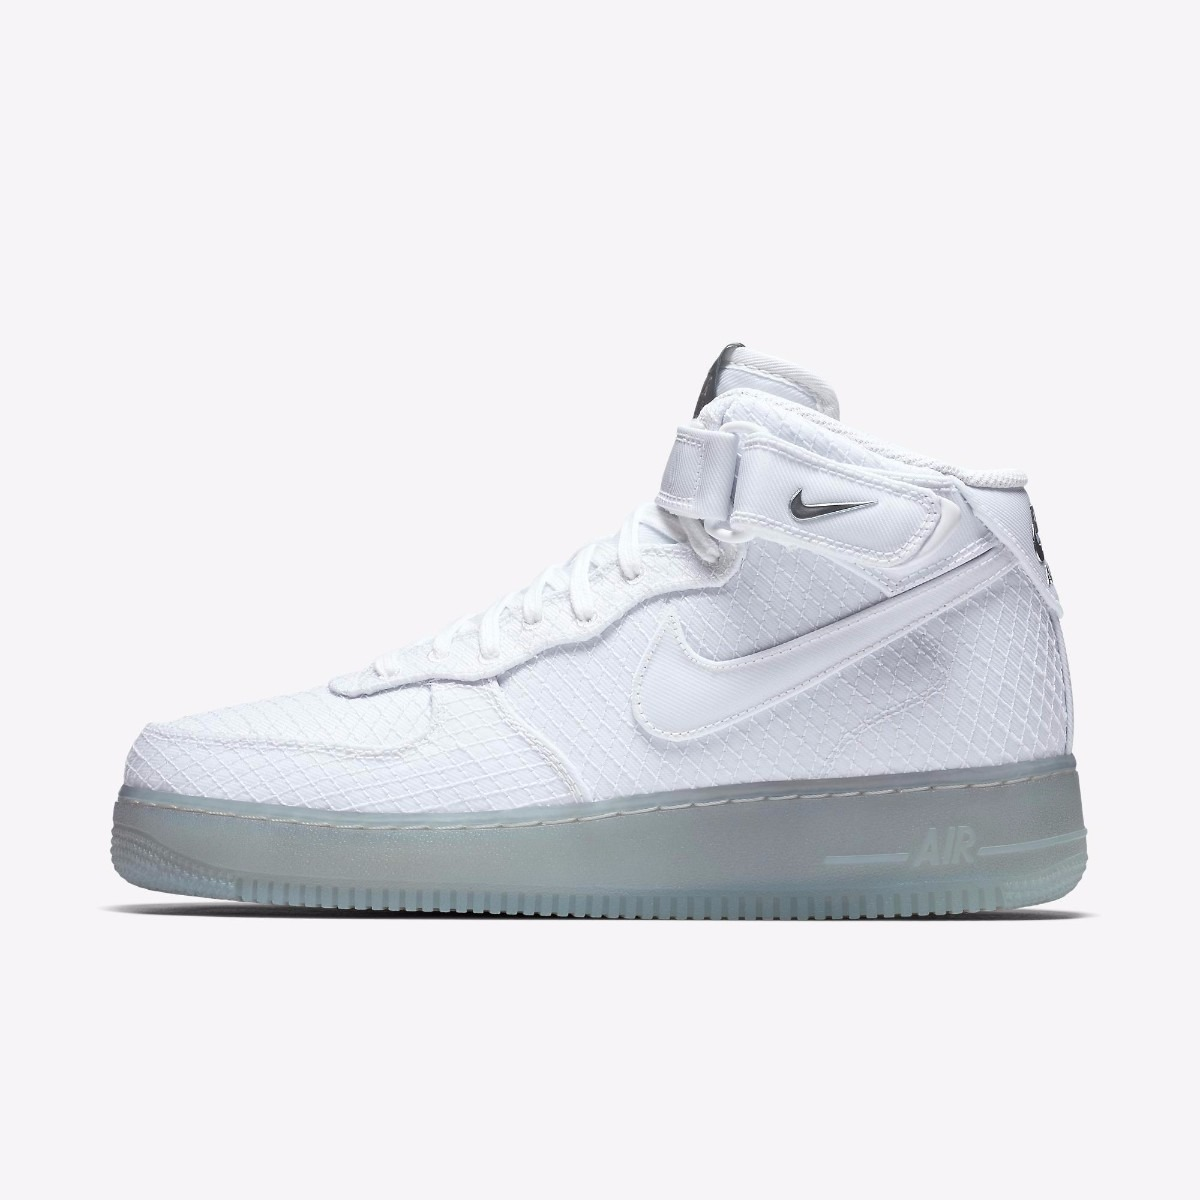 N I K E Air force 1 mid 07